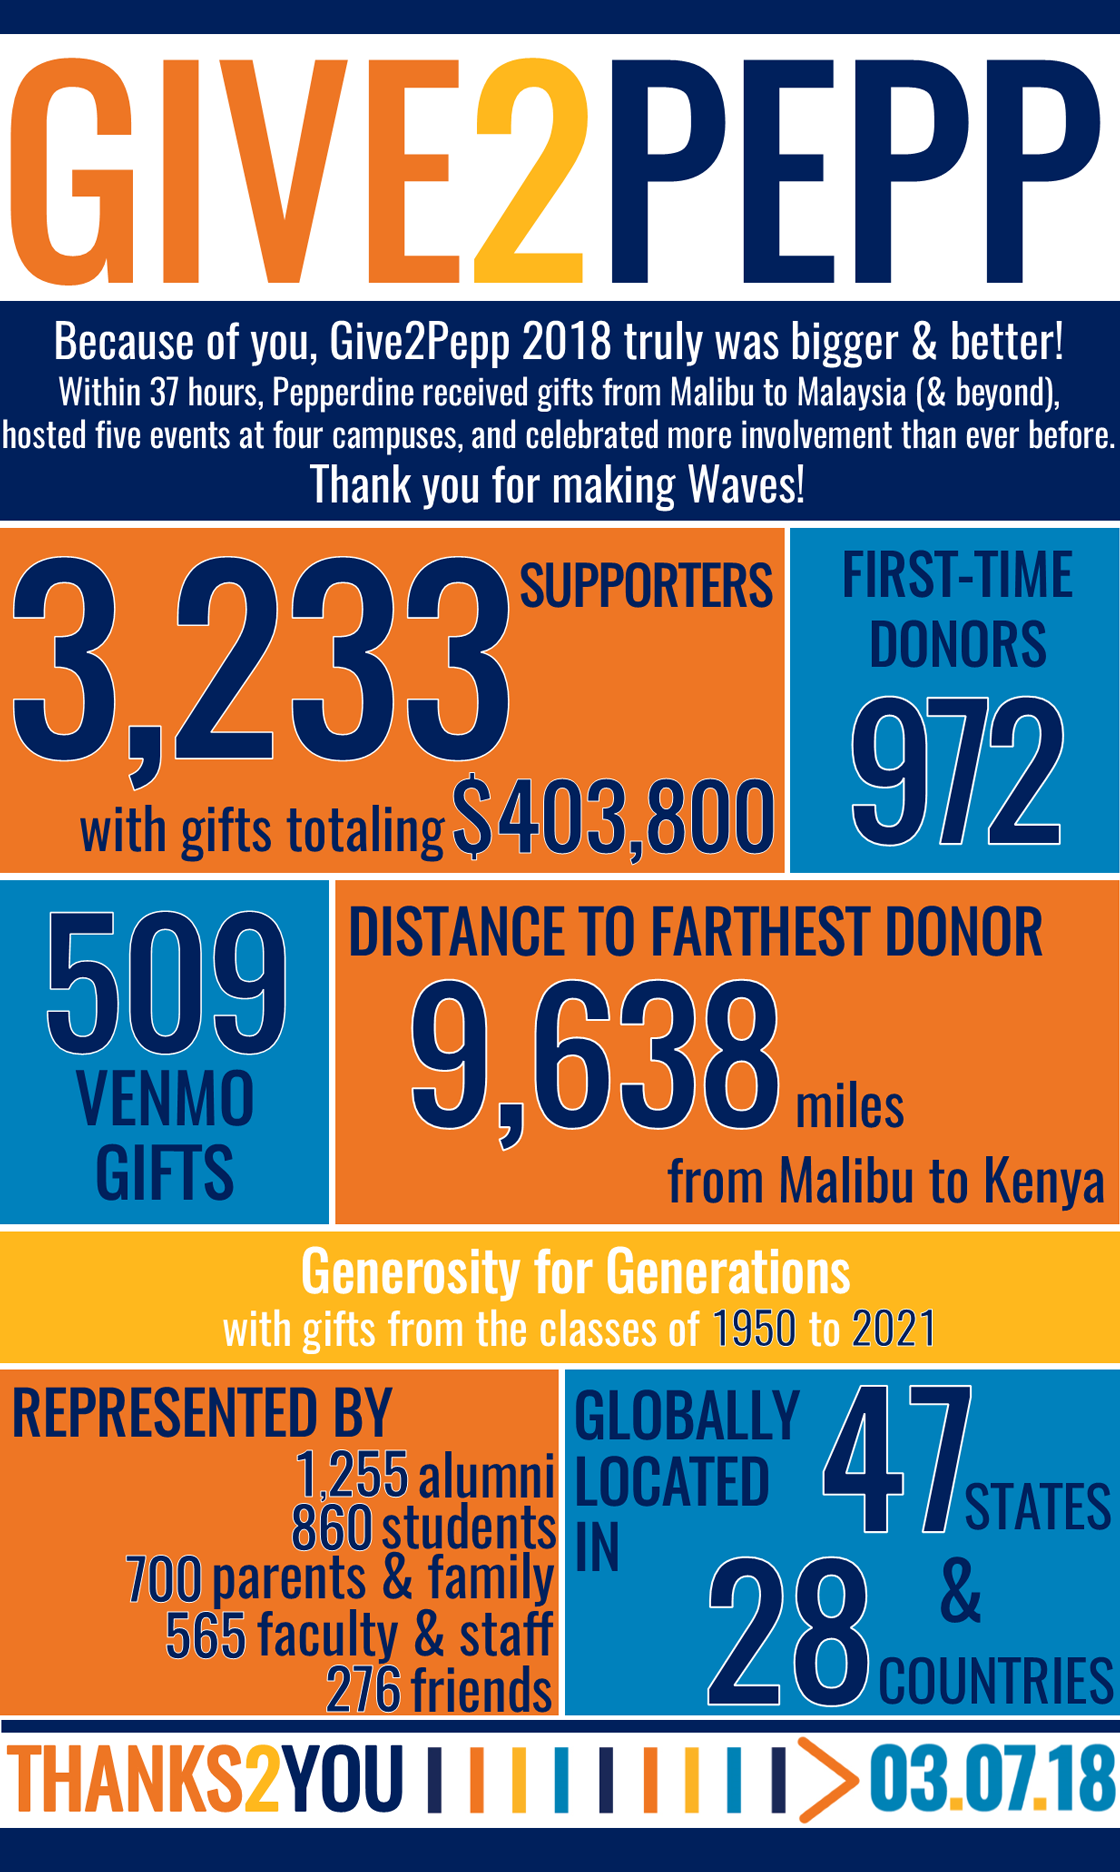 Give2Pepp 2018: 3,233 supporters with gifts totally $403,800. 972 first-time donors. 509 venmo gifts. Distance to farthest donor was 9,638 miles from Malibu to Kenya. Gererosity for Generations with gifts from the classes of 1950 - 2021. Represented by 1,255 alumni, 860 students, 700 parents and family, 565 faculty and staff, 276 friends. Globally located in 47 states and 28 countries.